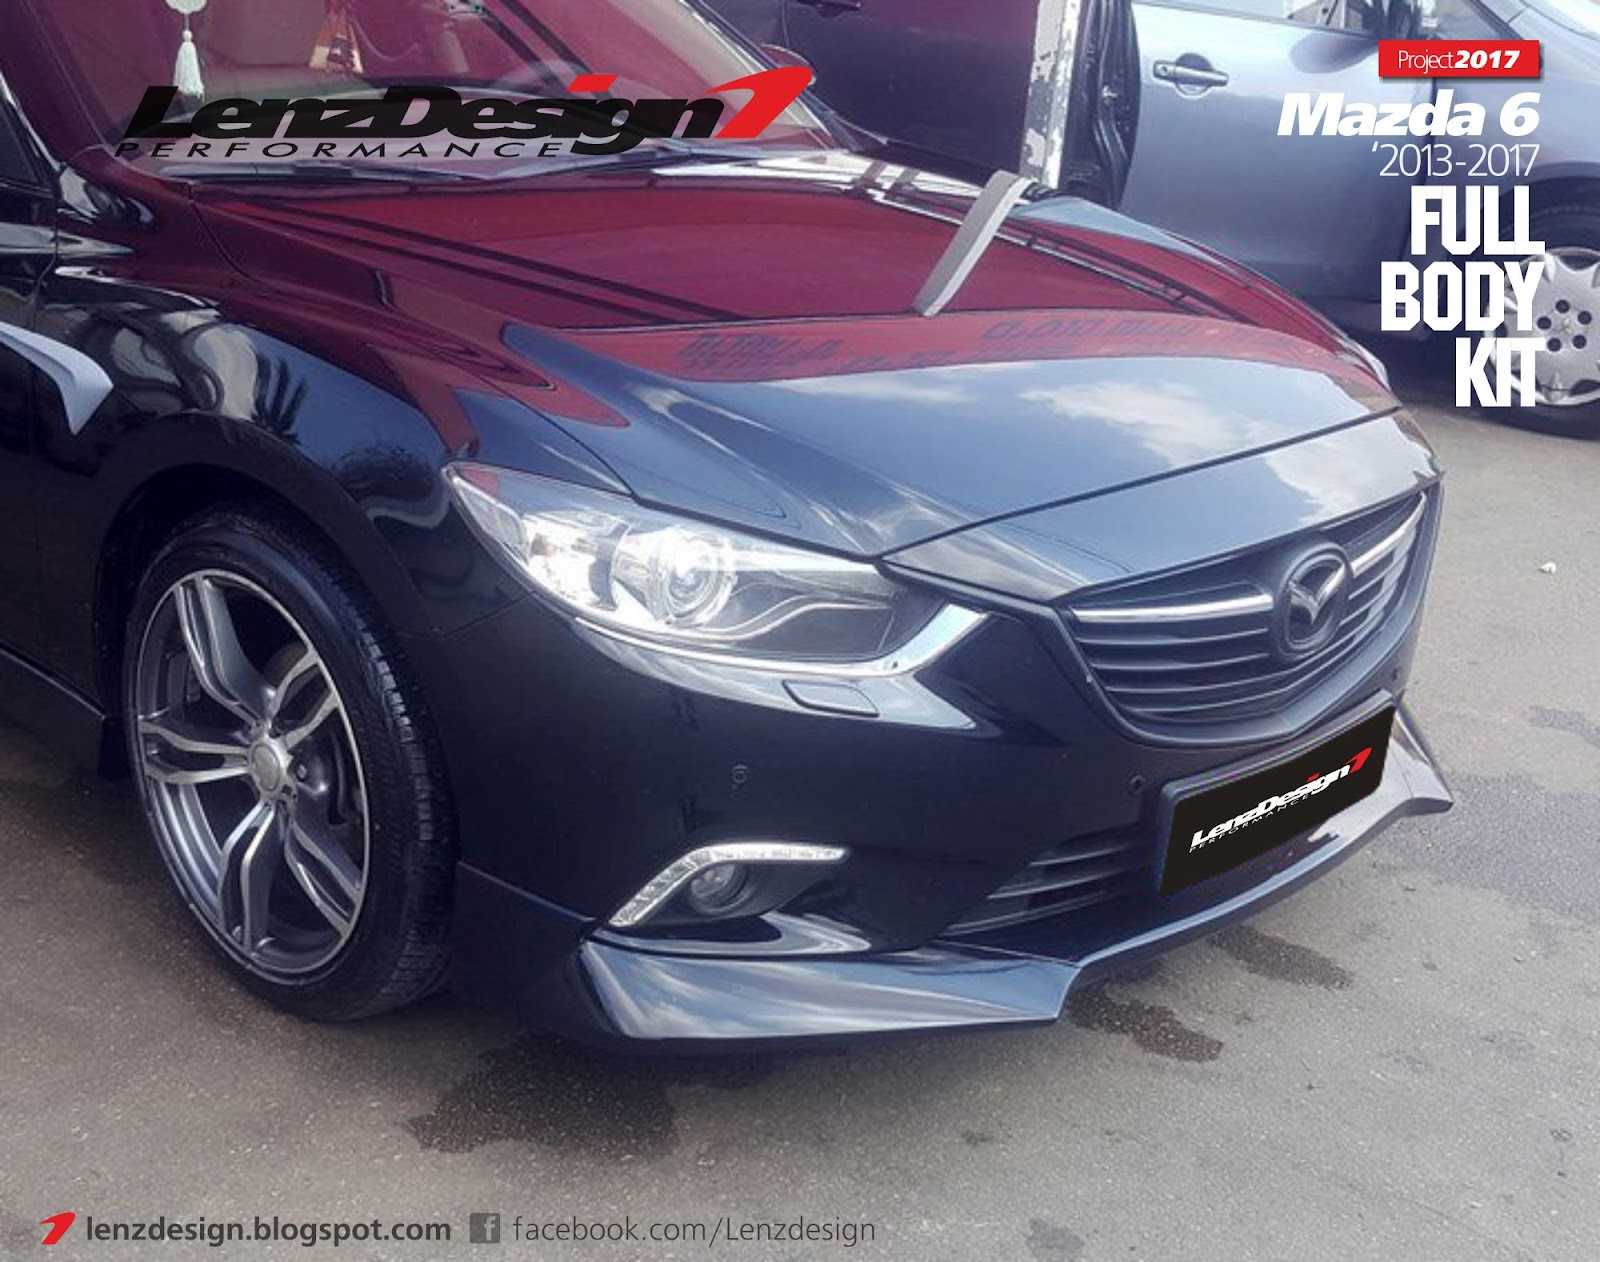 mazda 6 gj atenza lenzdesign bodykit spoilers 2013 2014. Black Bedroom Furniture Sets. Home Design Ideas